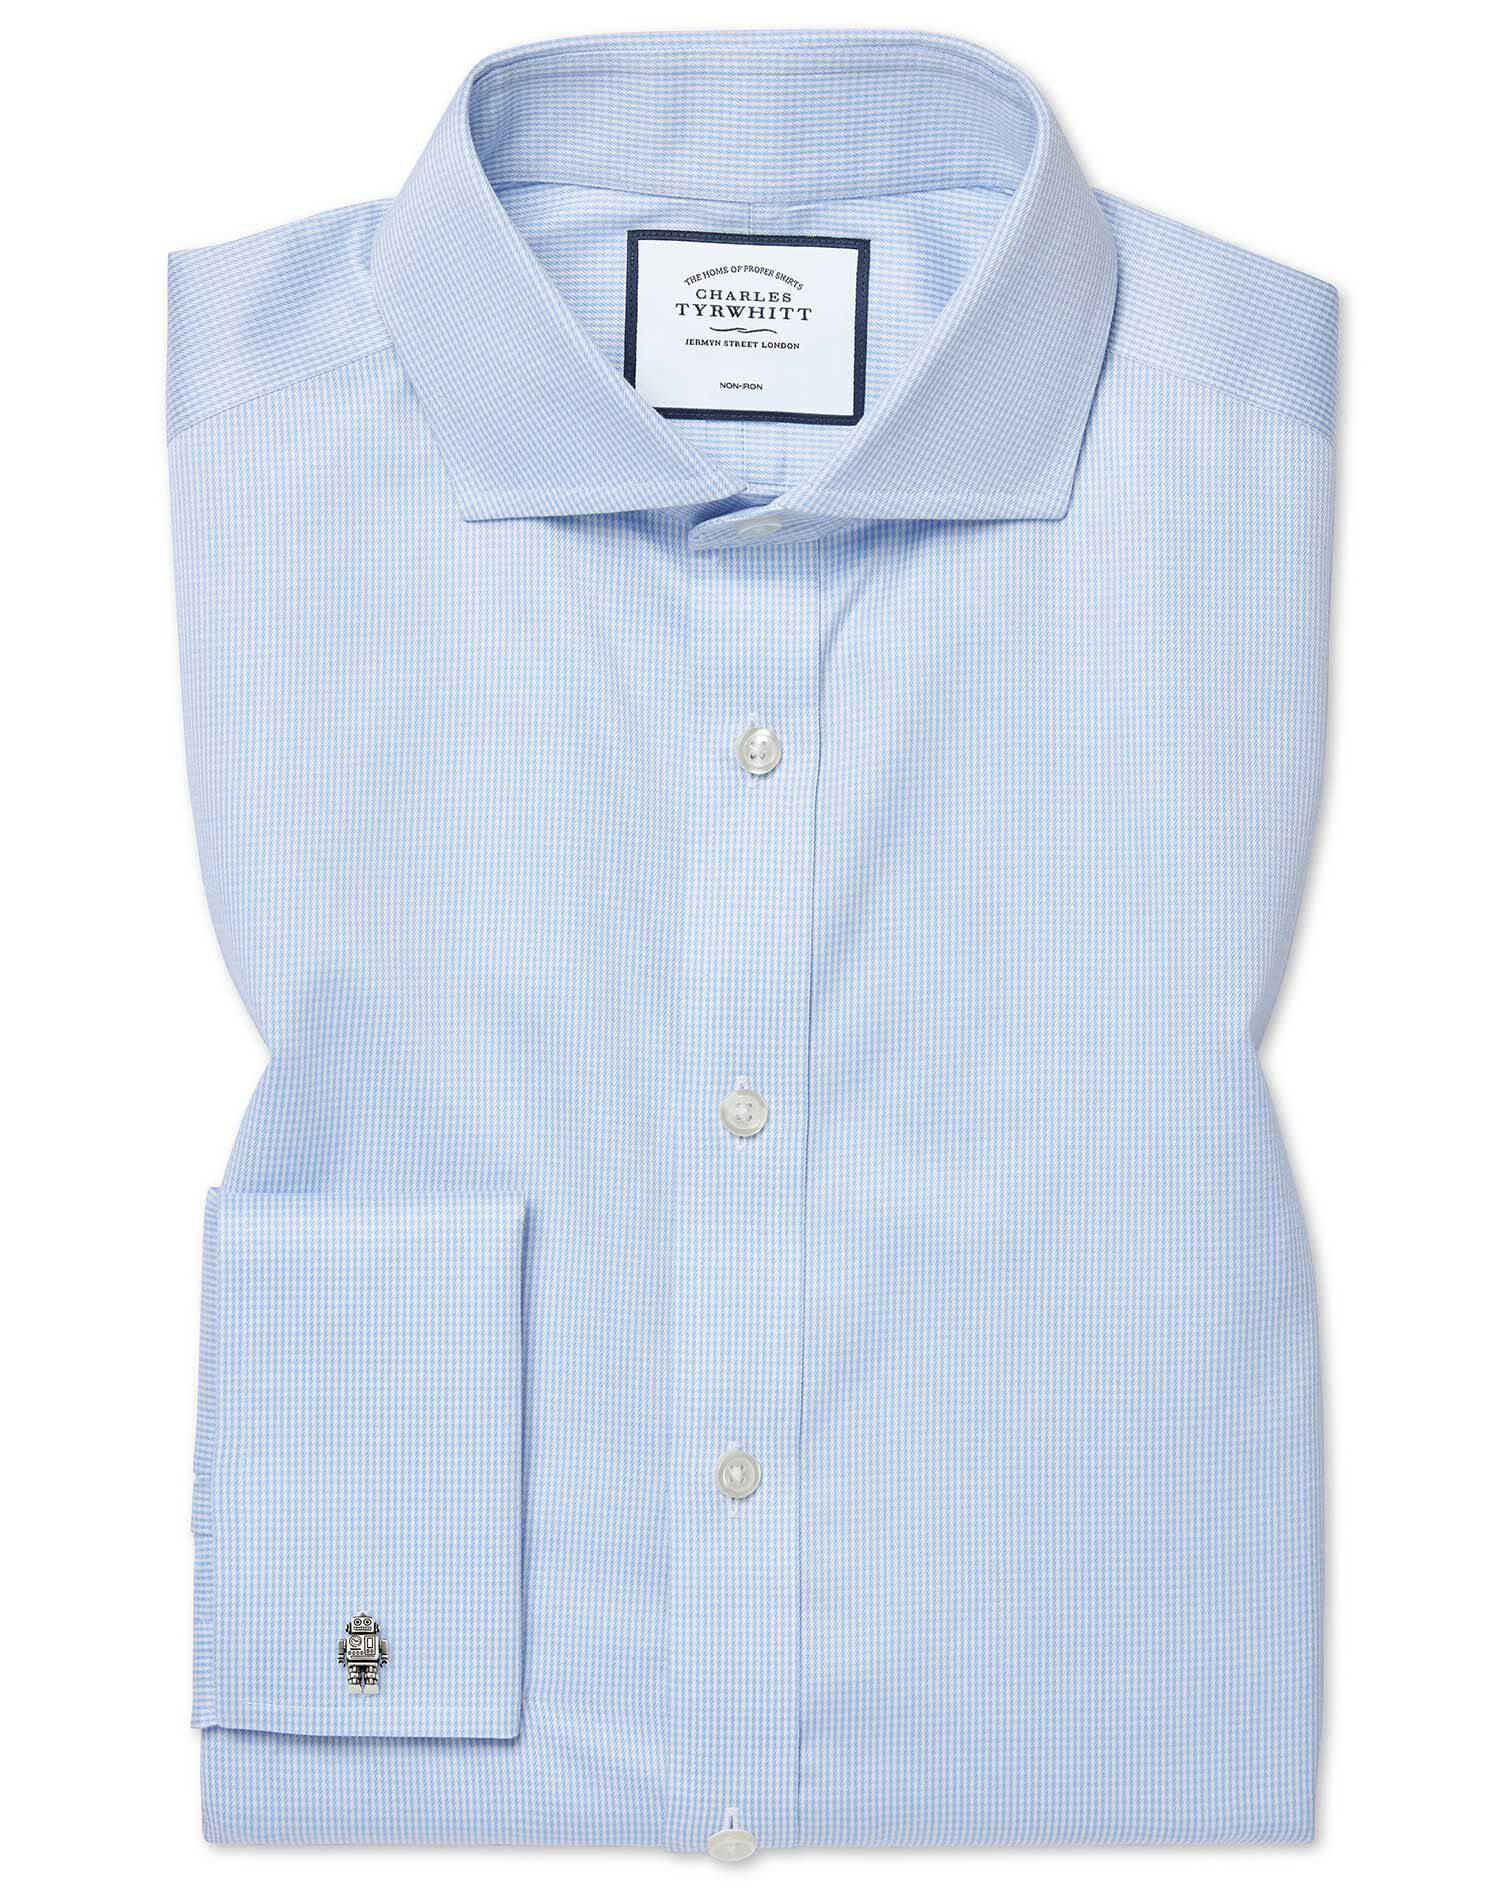 Extra Slim Fit Cutaway Collar Non-Iron Puppytooth Sky Blue Cotton Formal Shirt Double Cuff Size 15.5